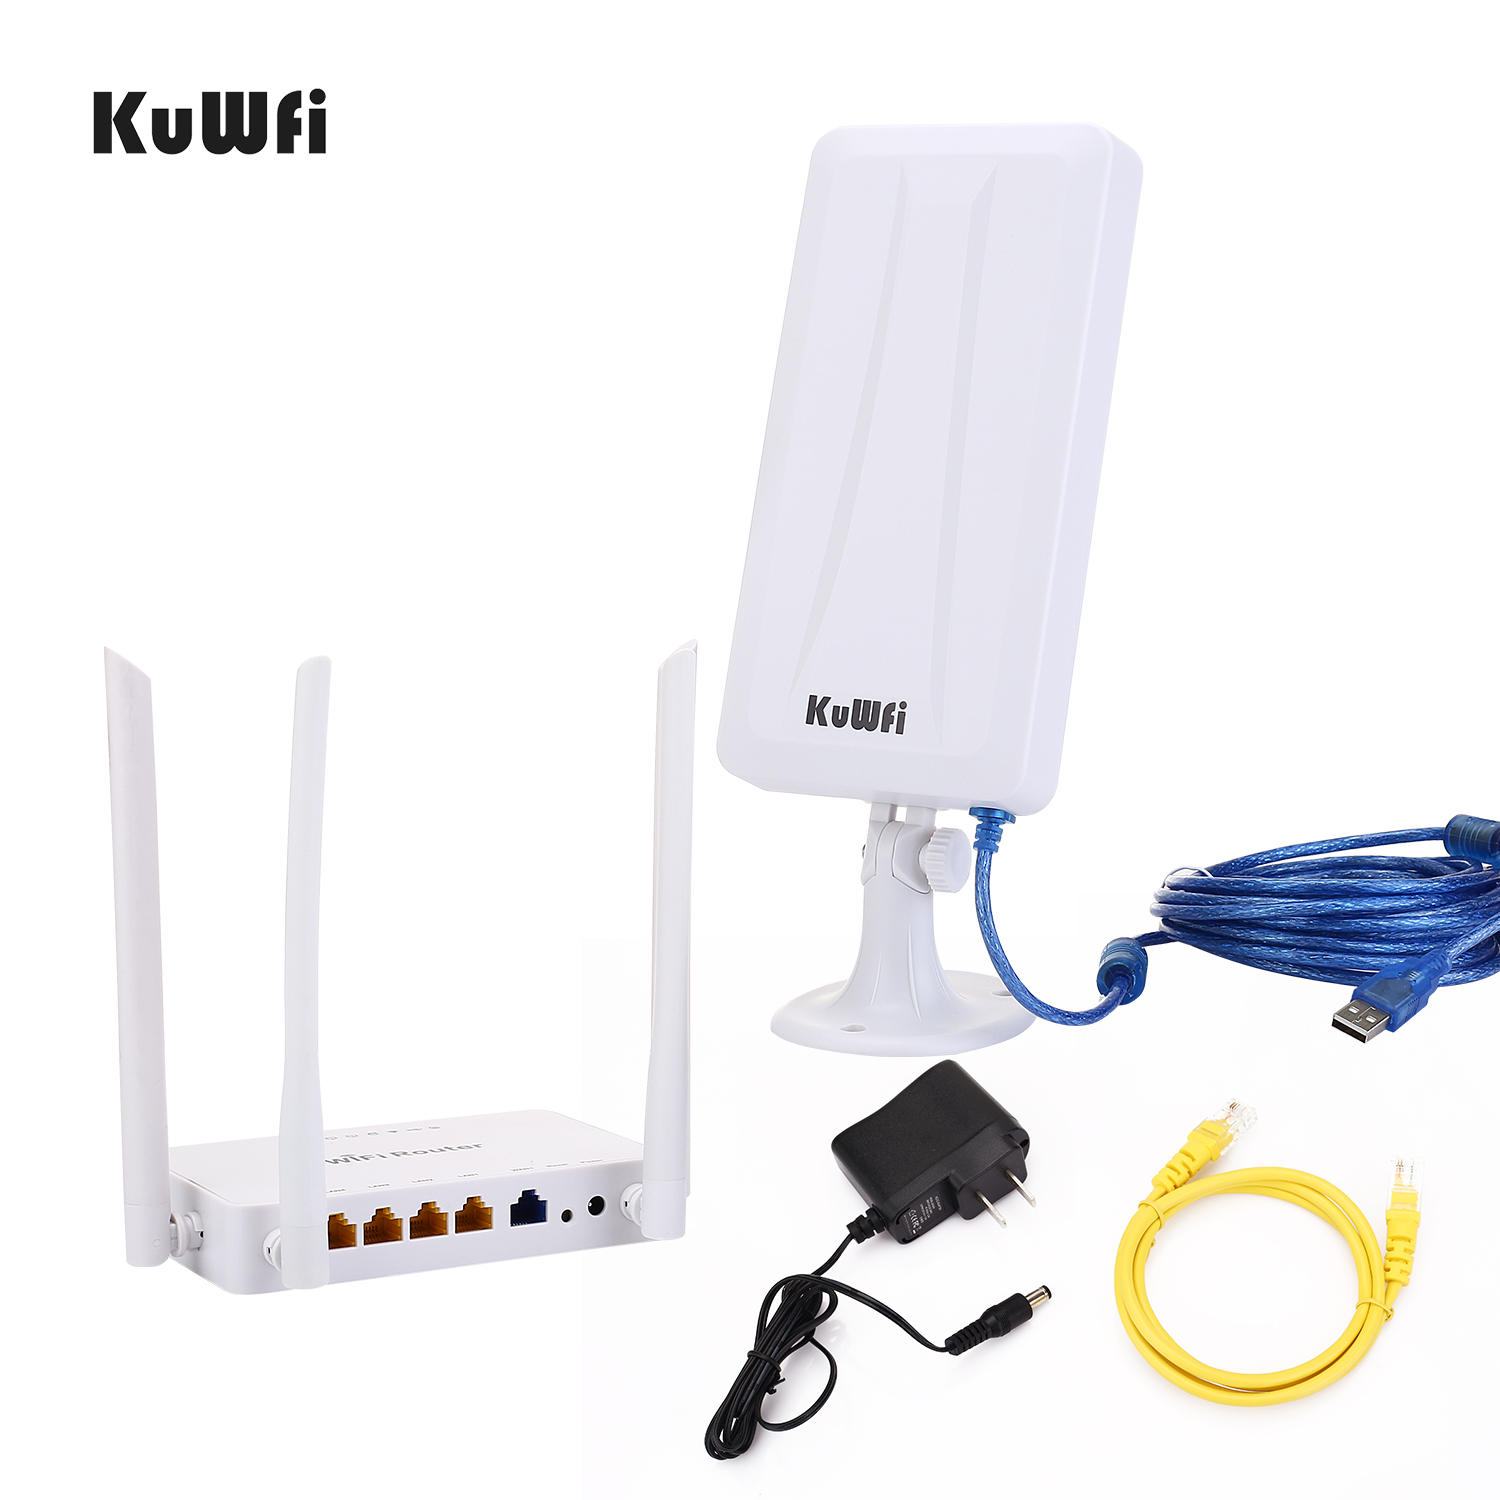 KuWFi 300mbps Wireless Router+High Gain Wifi USB Adapter 300Mbps High Power Wifi Router one Set Extend Wifi Signal Share 32users-in Wireless Routers from Computer & Office